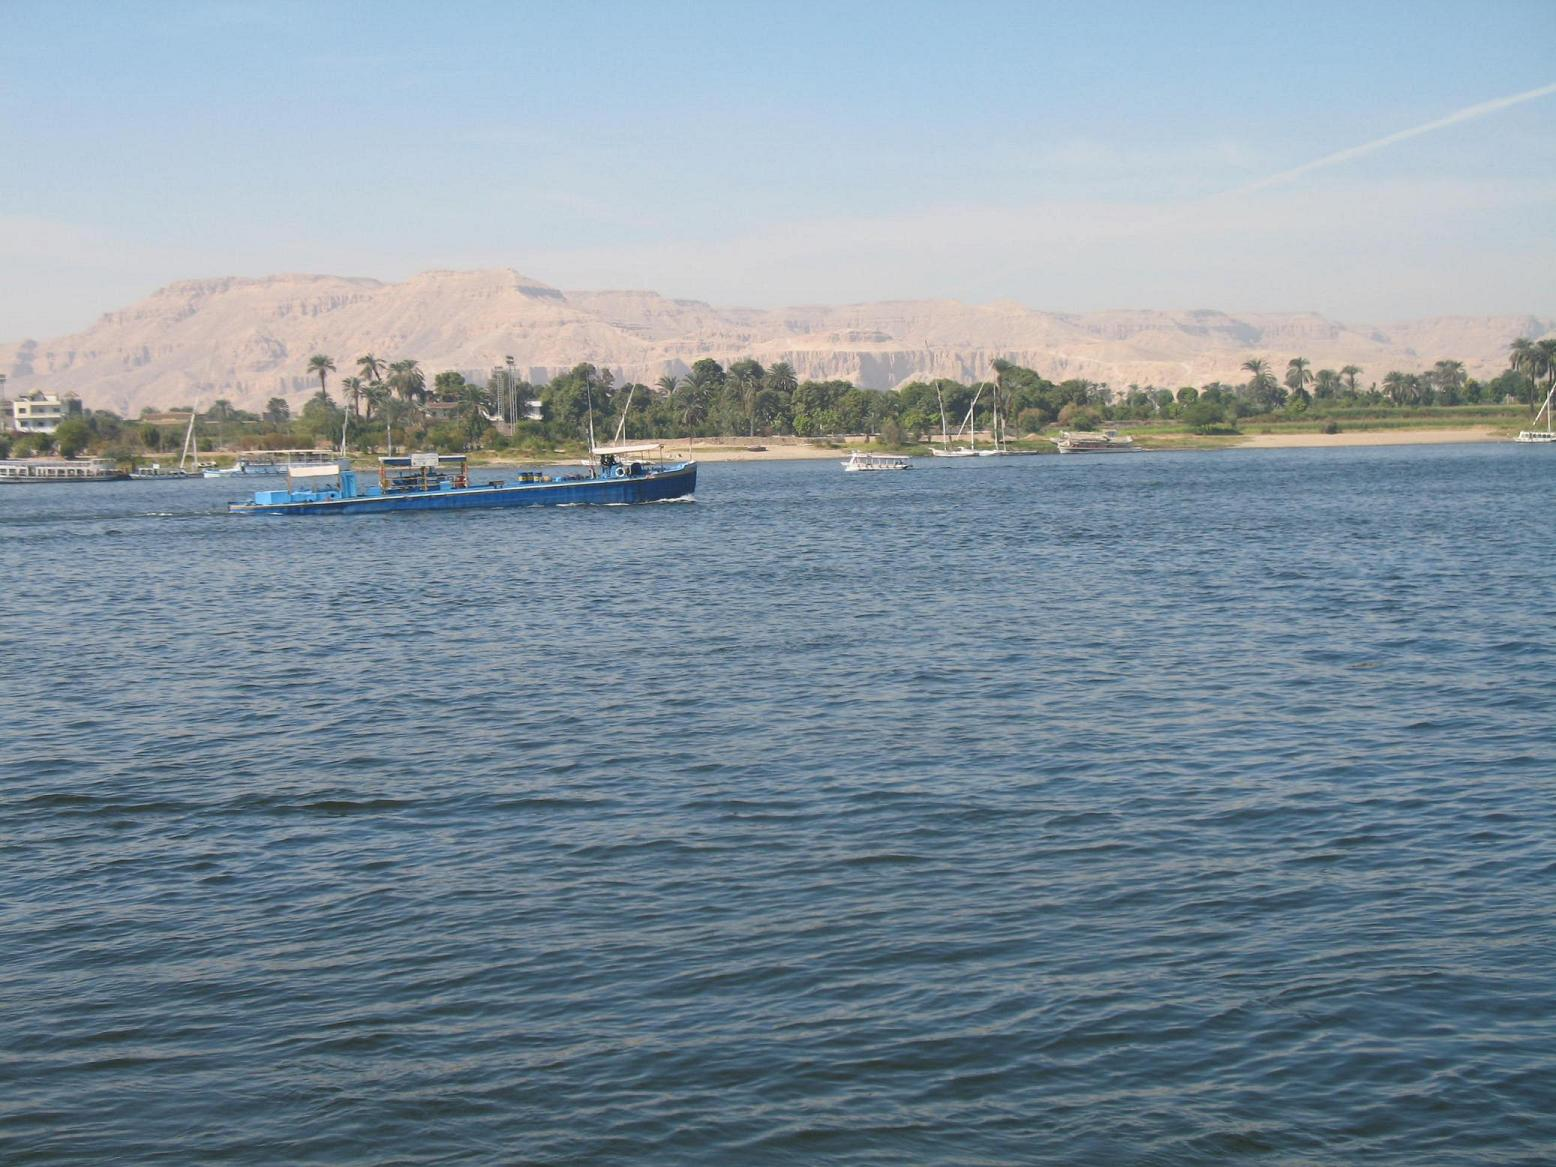 The beautiful River Nile at Luxor, Egypt